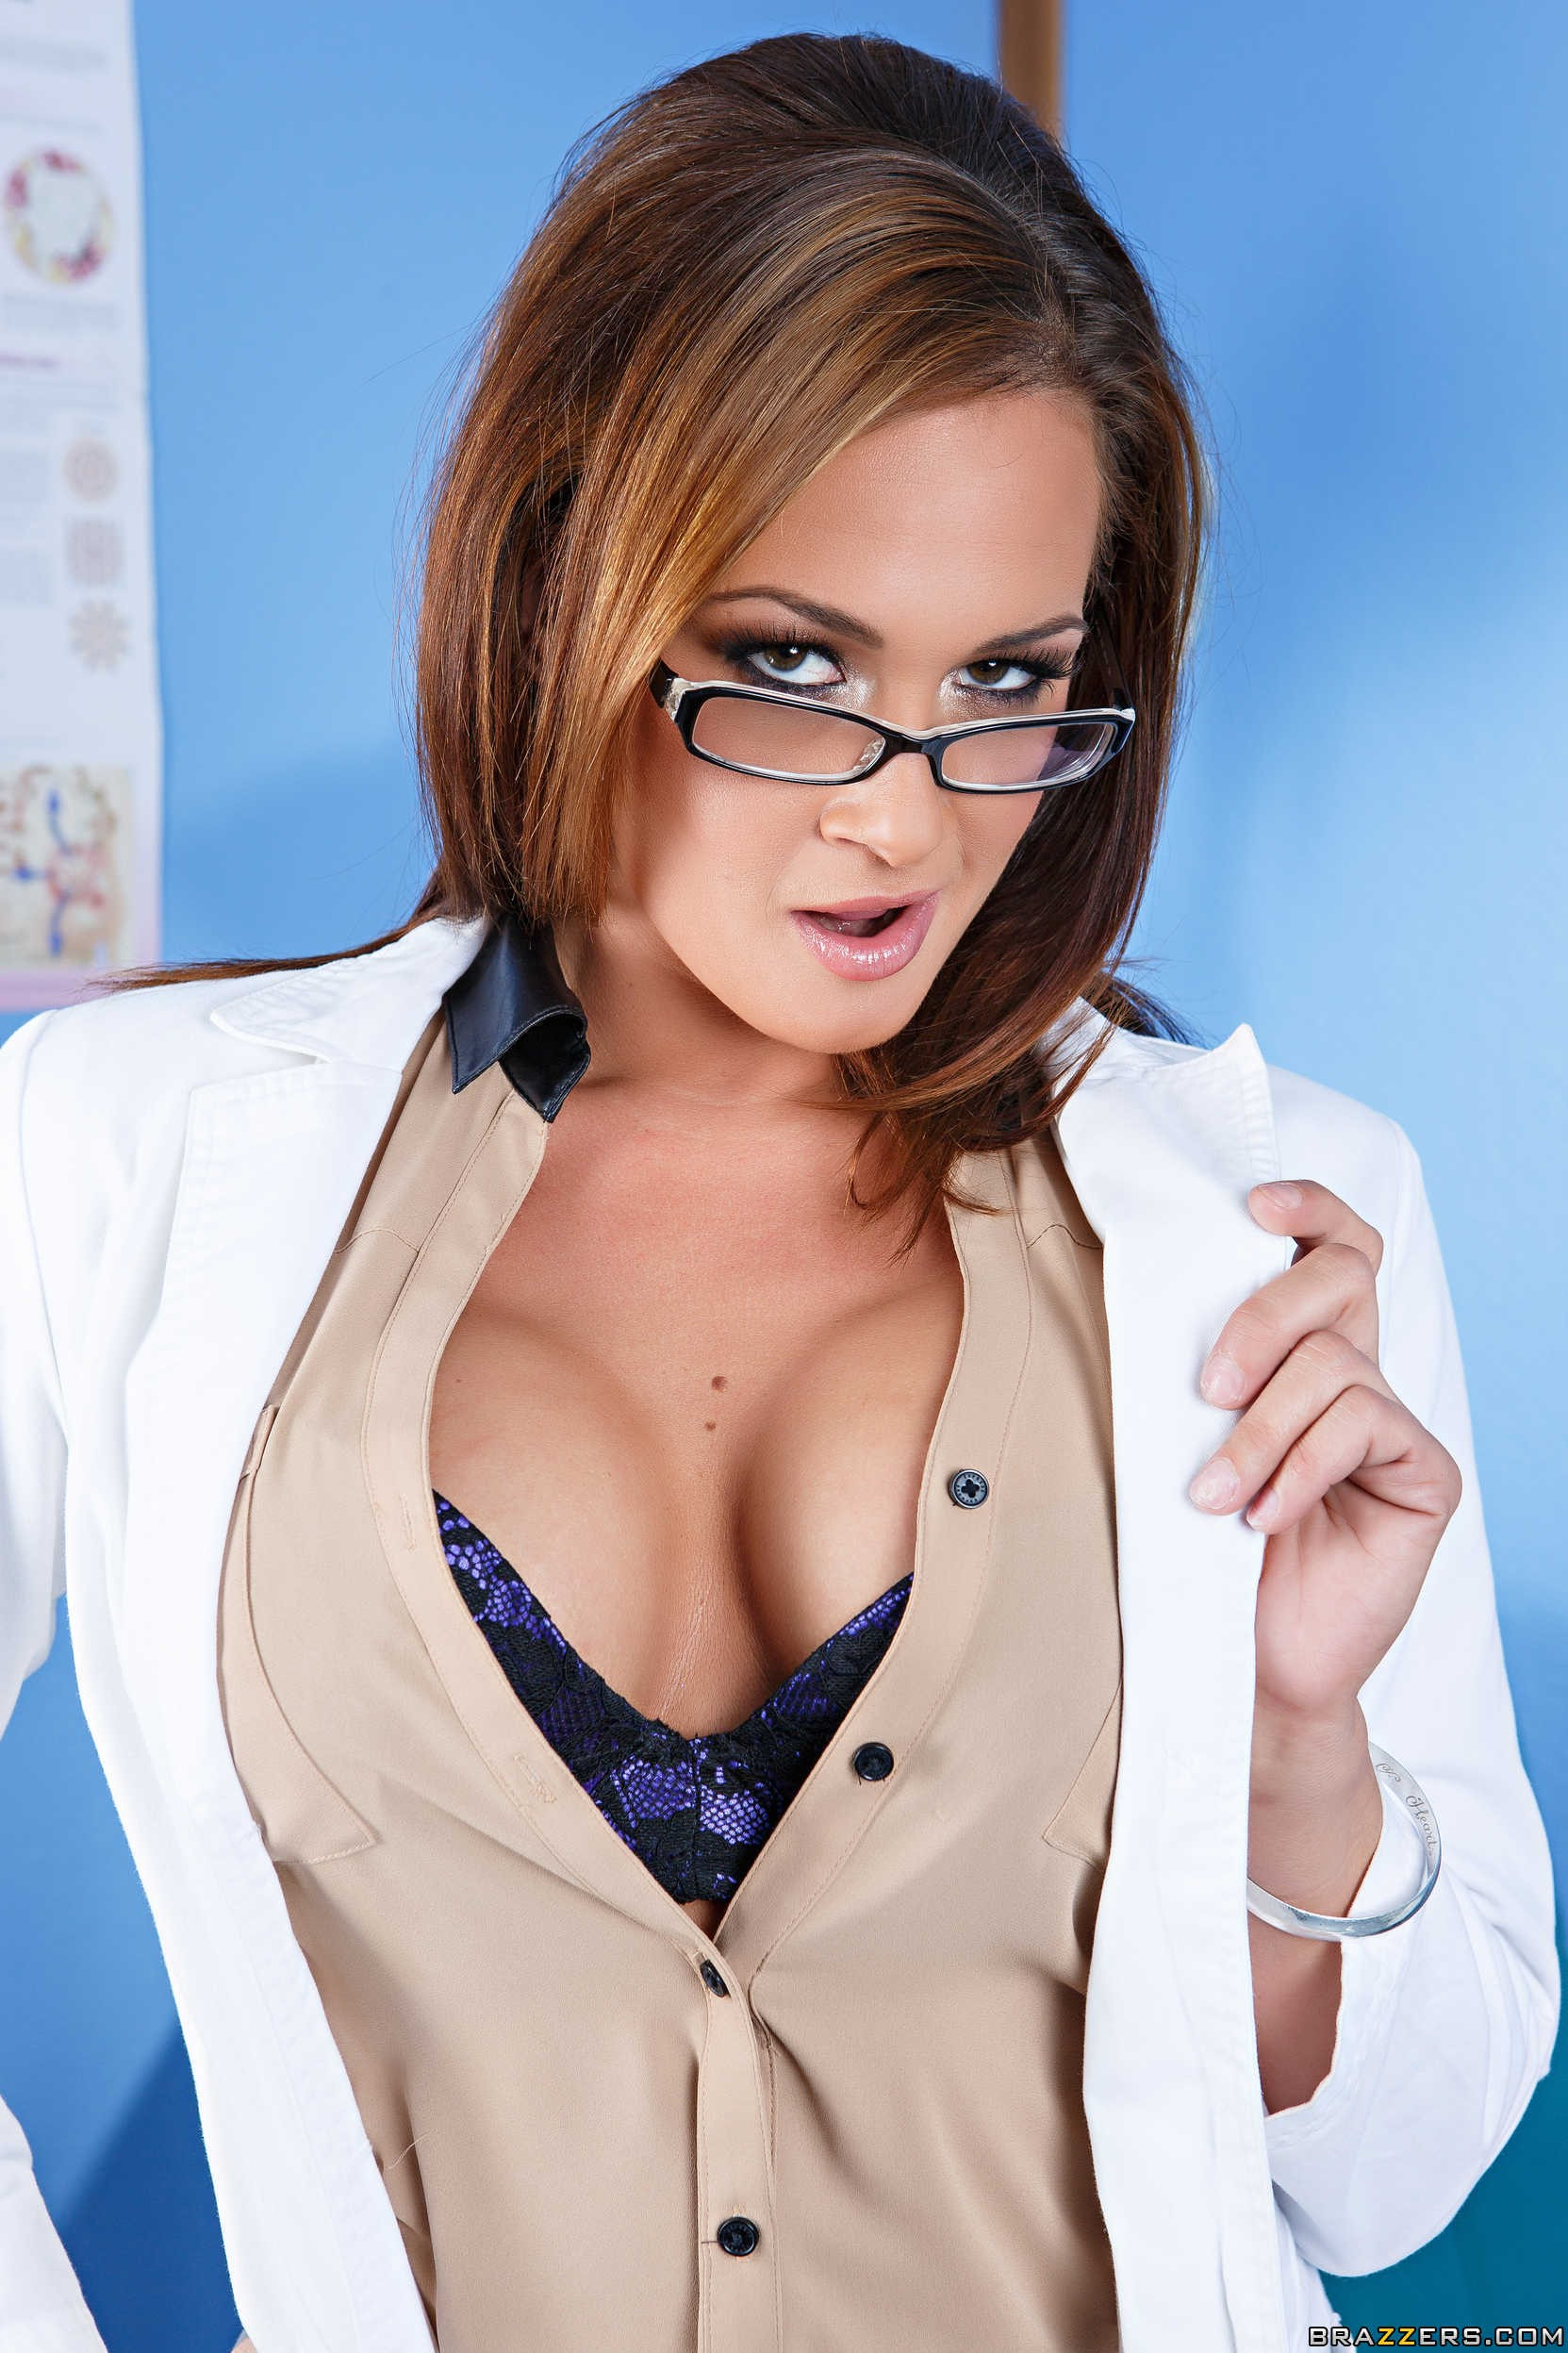 Fogosas Webcam: Tory Lane